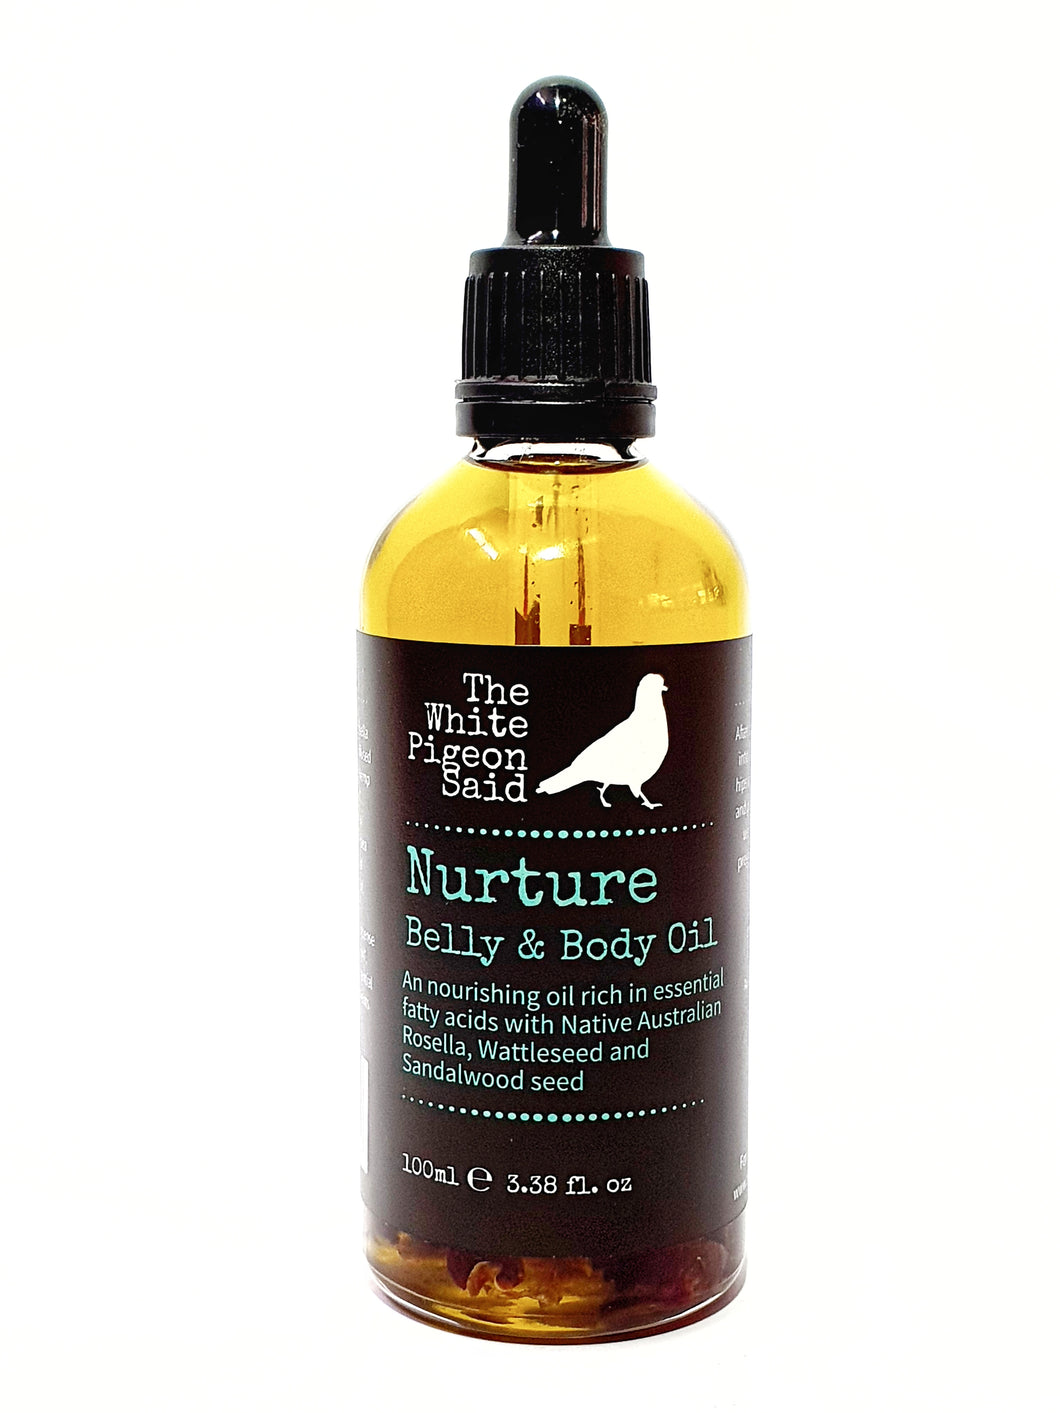 Nurture Belly and Body Oil